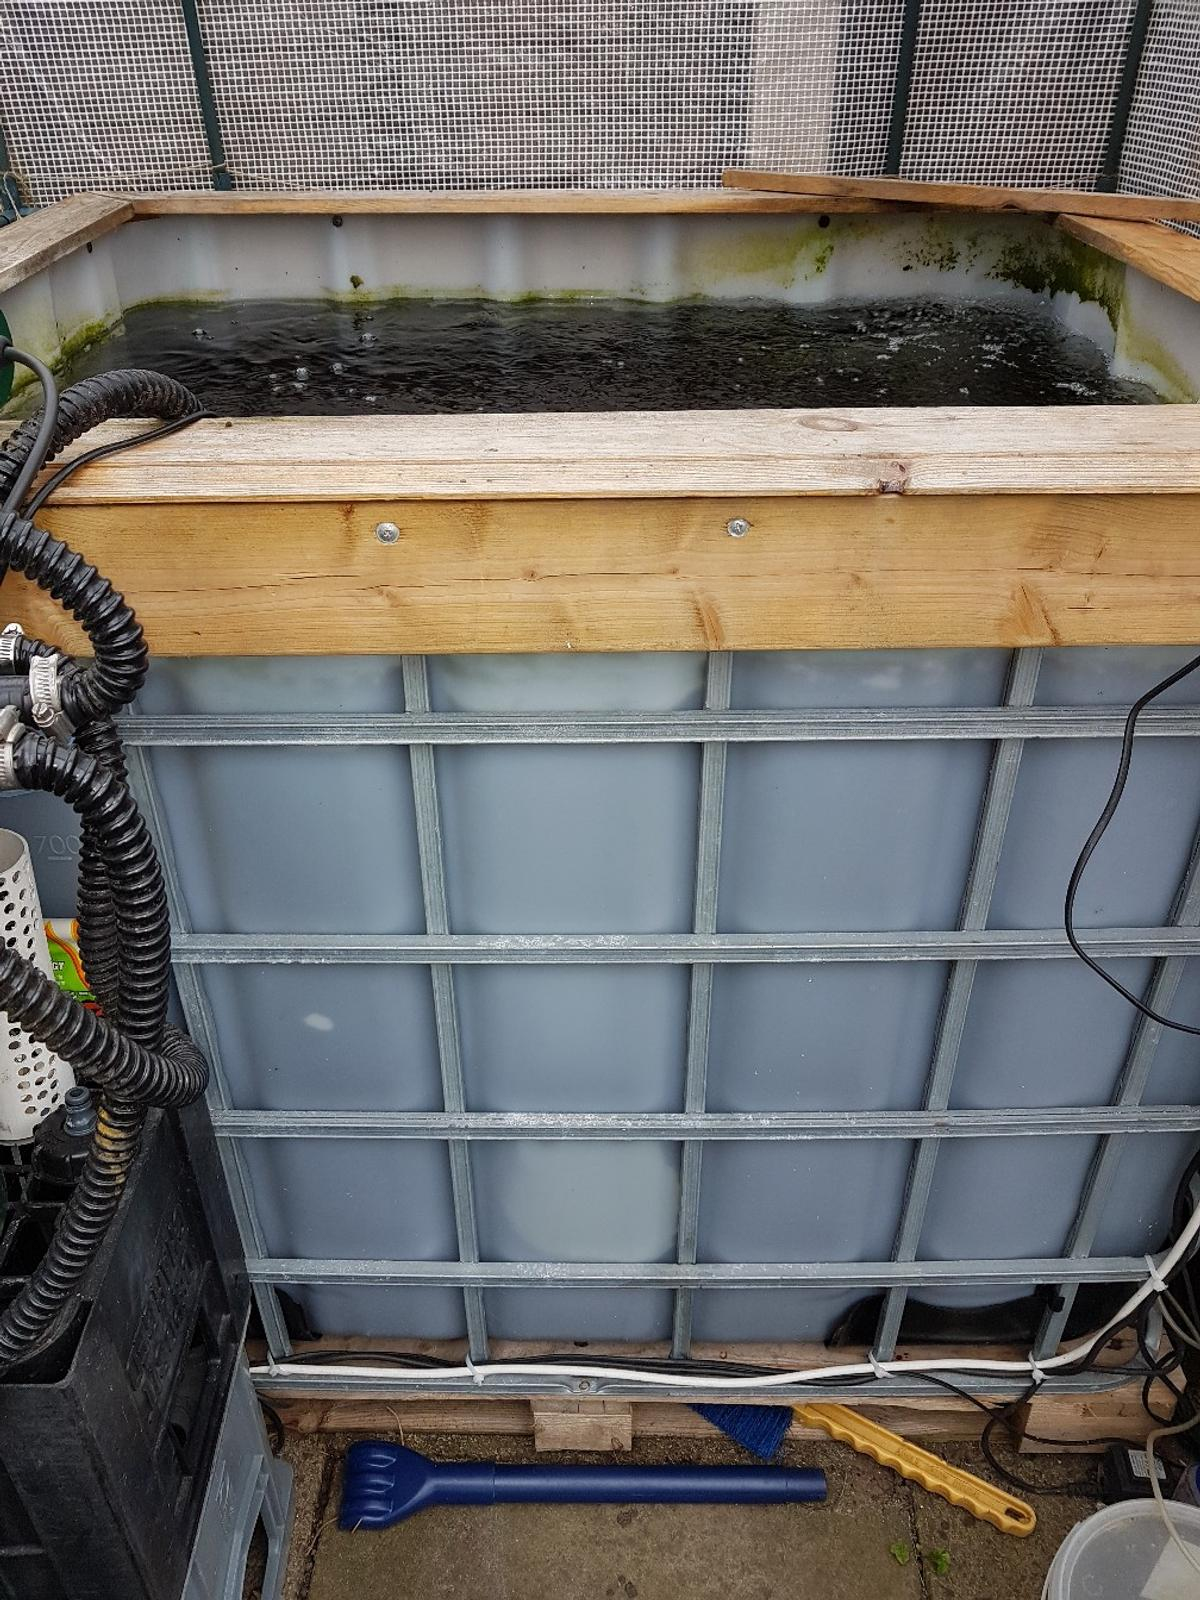 1000 ltr water tank .42 inches x 51 inches x 43 inches deep.koi fry growing sytem .this comes compleat with internal pump and filter.external filter.external uv lamp.external air pum and 2 air stones .and about 22 young koi carp.sizes apx 3 inches to 4 to 6inches mostly orange and orange/ white .healthy fish and setup 3 years old collection only.you must bring some one with you to collect as the tank as to be lifted over a 6ft fence but its not that heavy. CASH ON COLLECTION